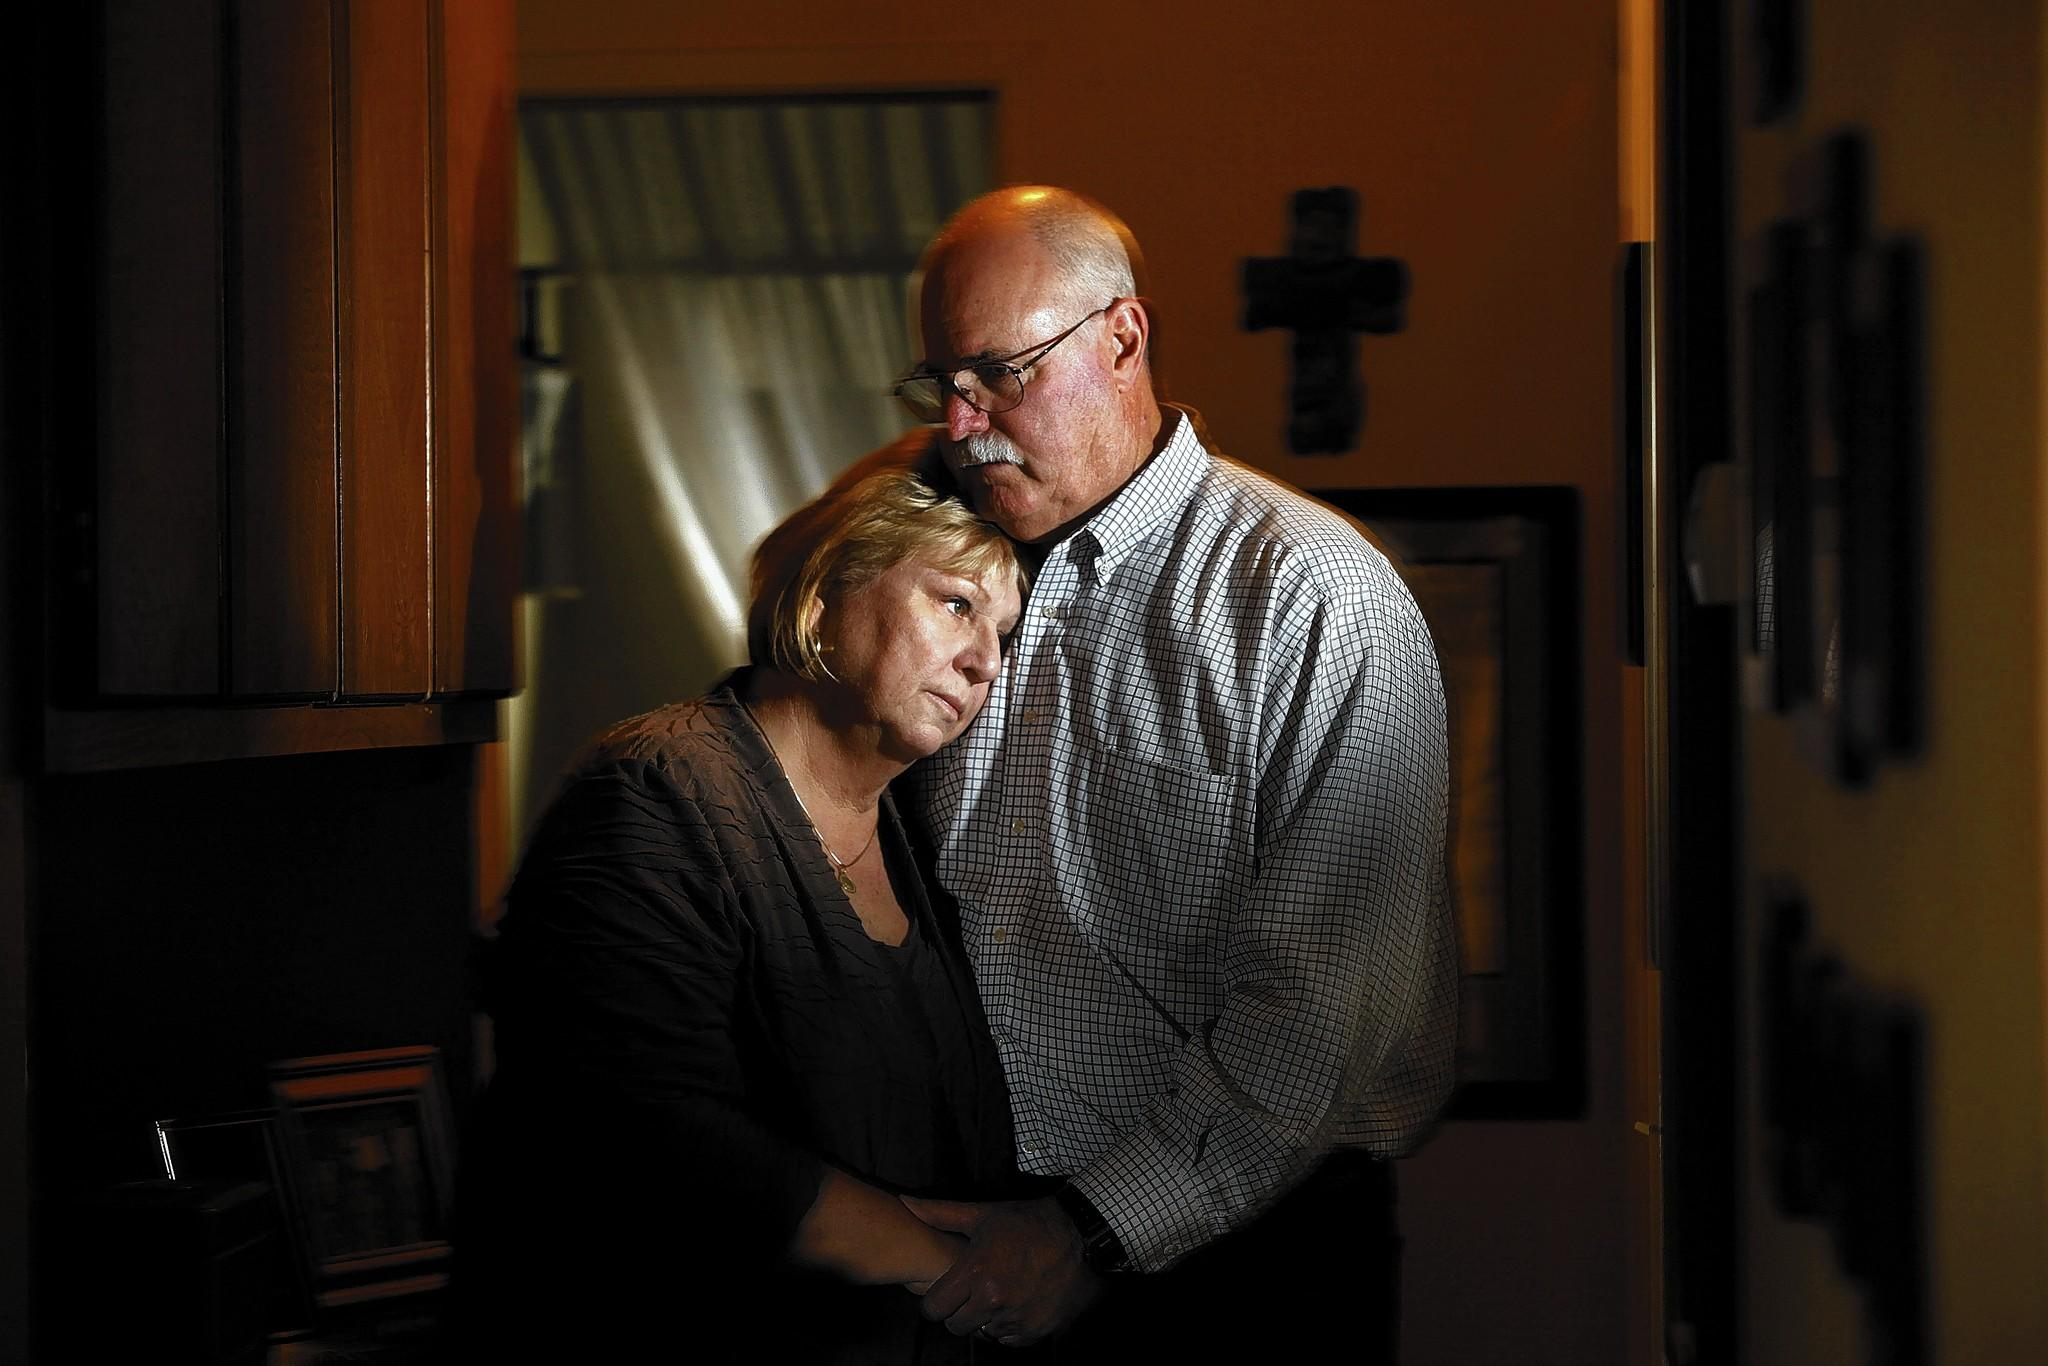 Bonnie and Danny McAlpin, of California, lost their son, Iraq War veteran Rusty McAlpin, to suicide not long after he left the Army.